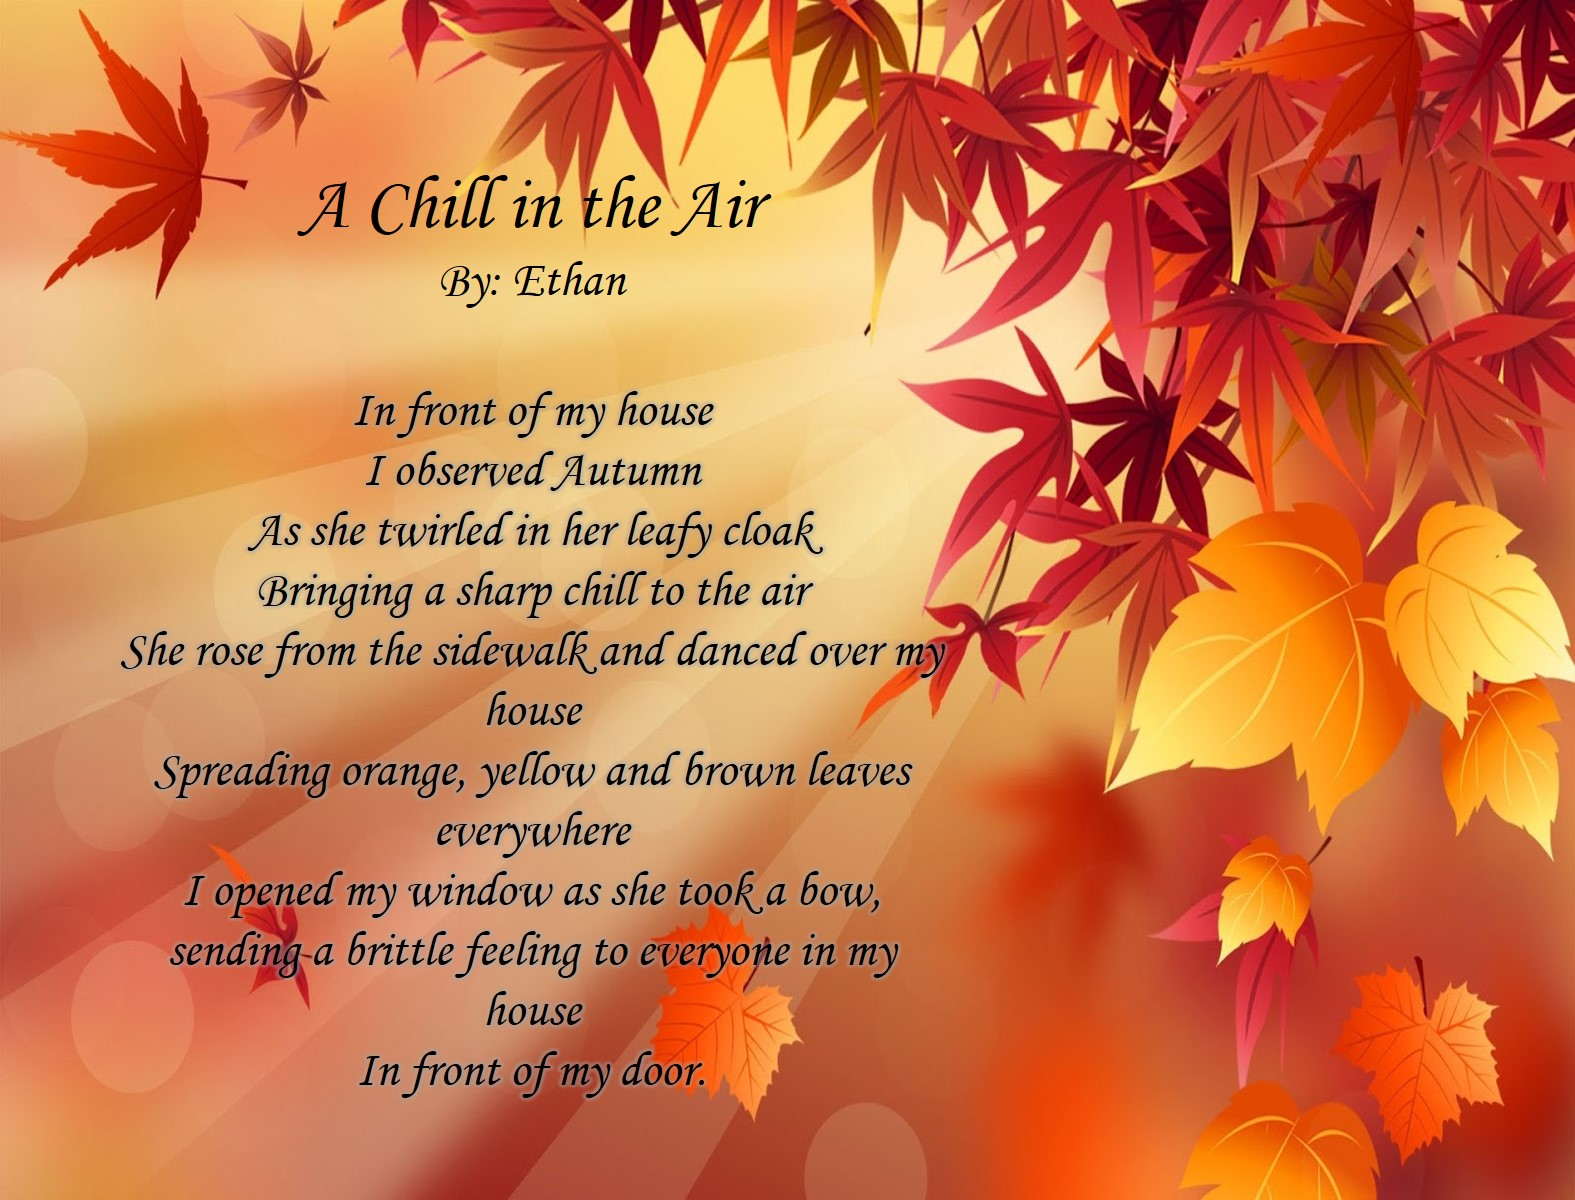 Autumn by Ethan